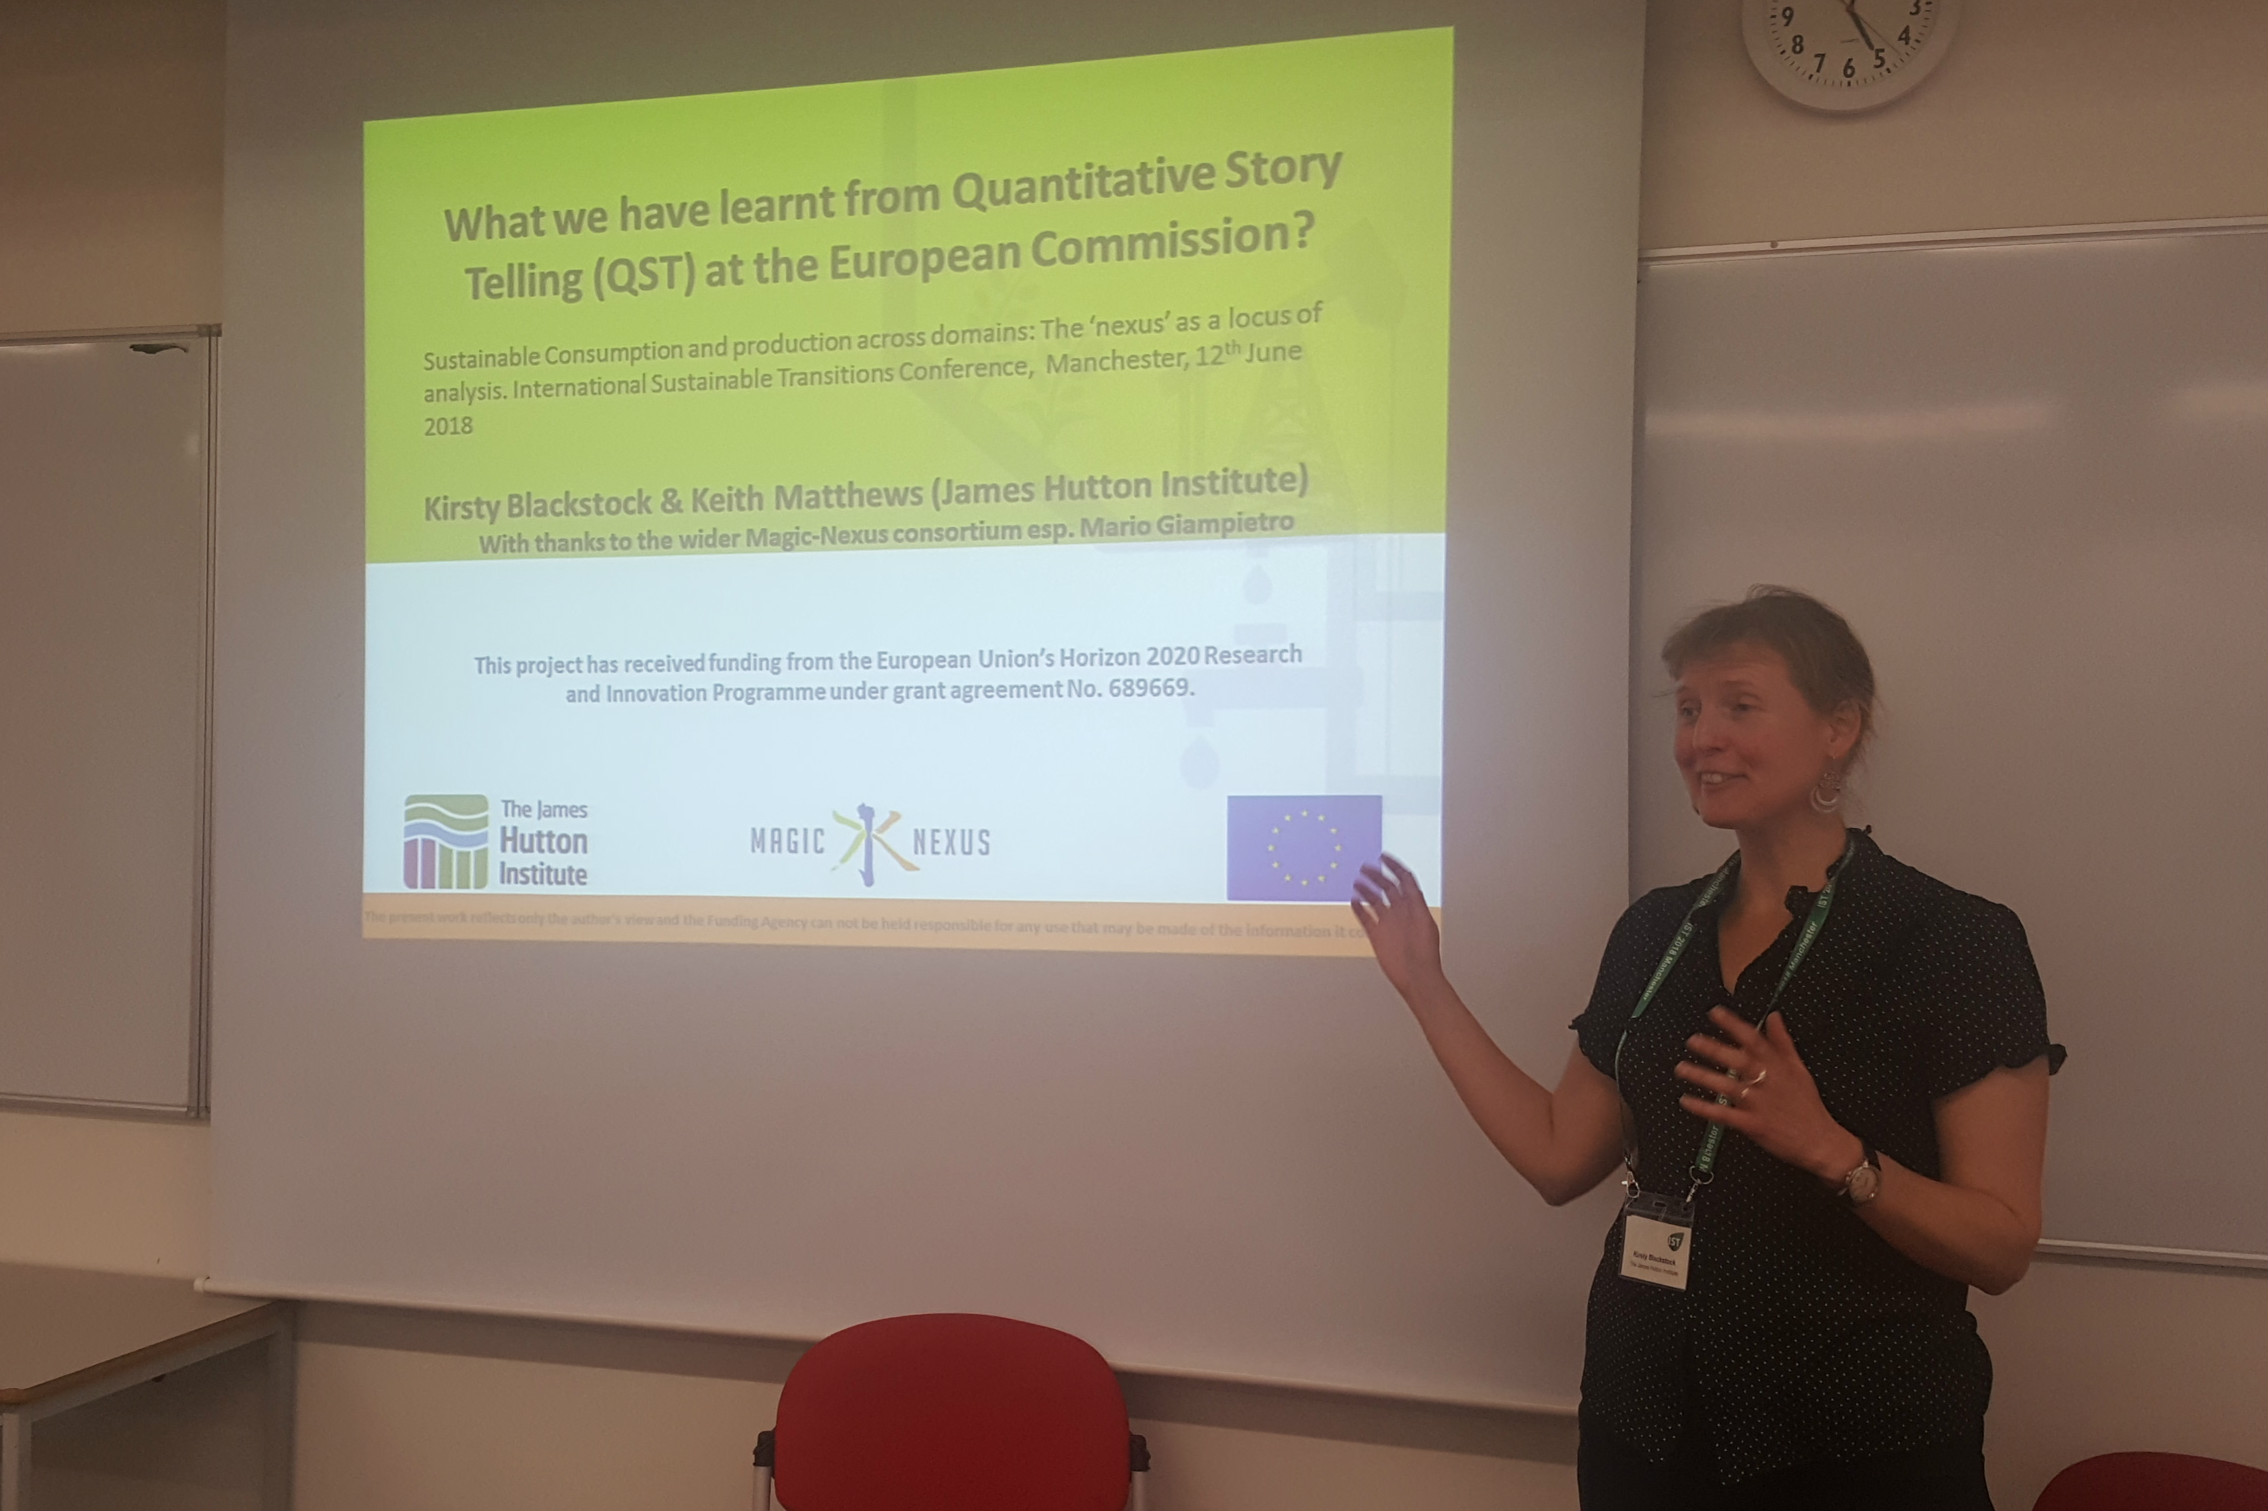 IST 2018 Conference - Kirsty Blackstock presenting